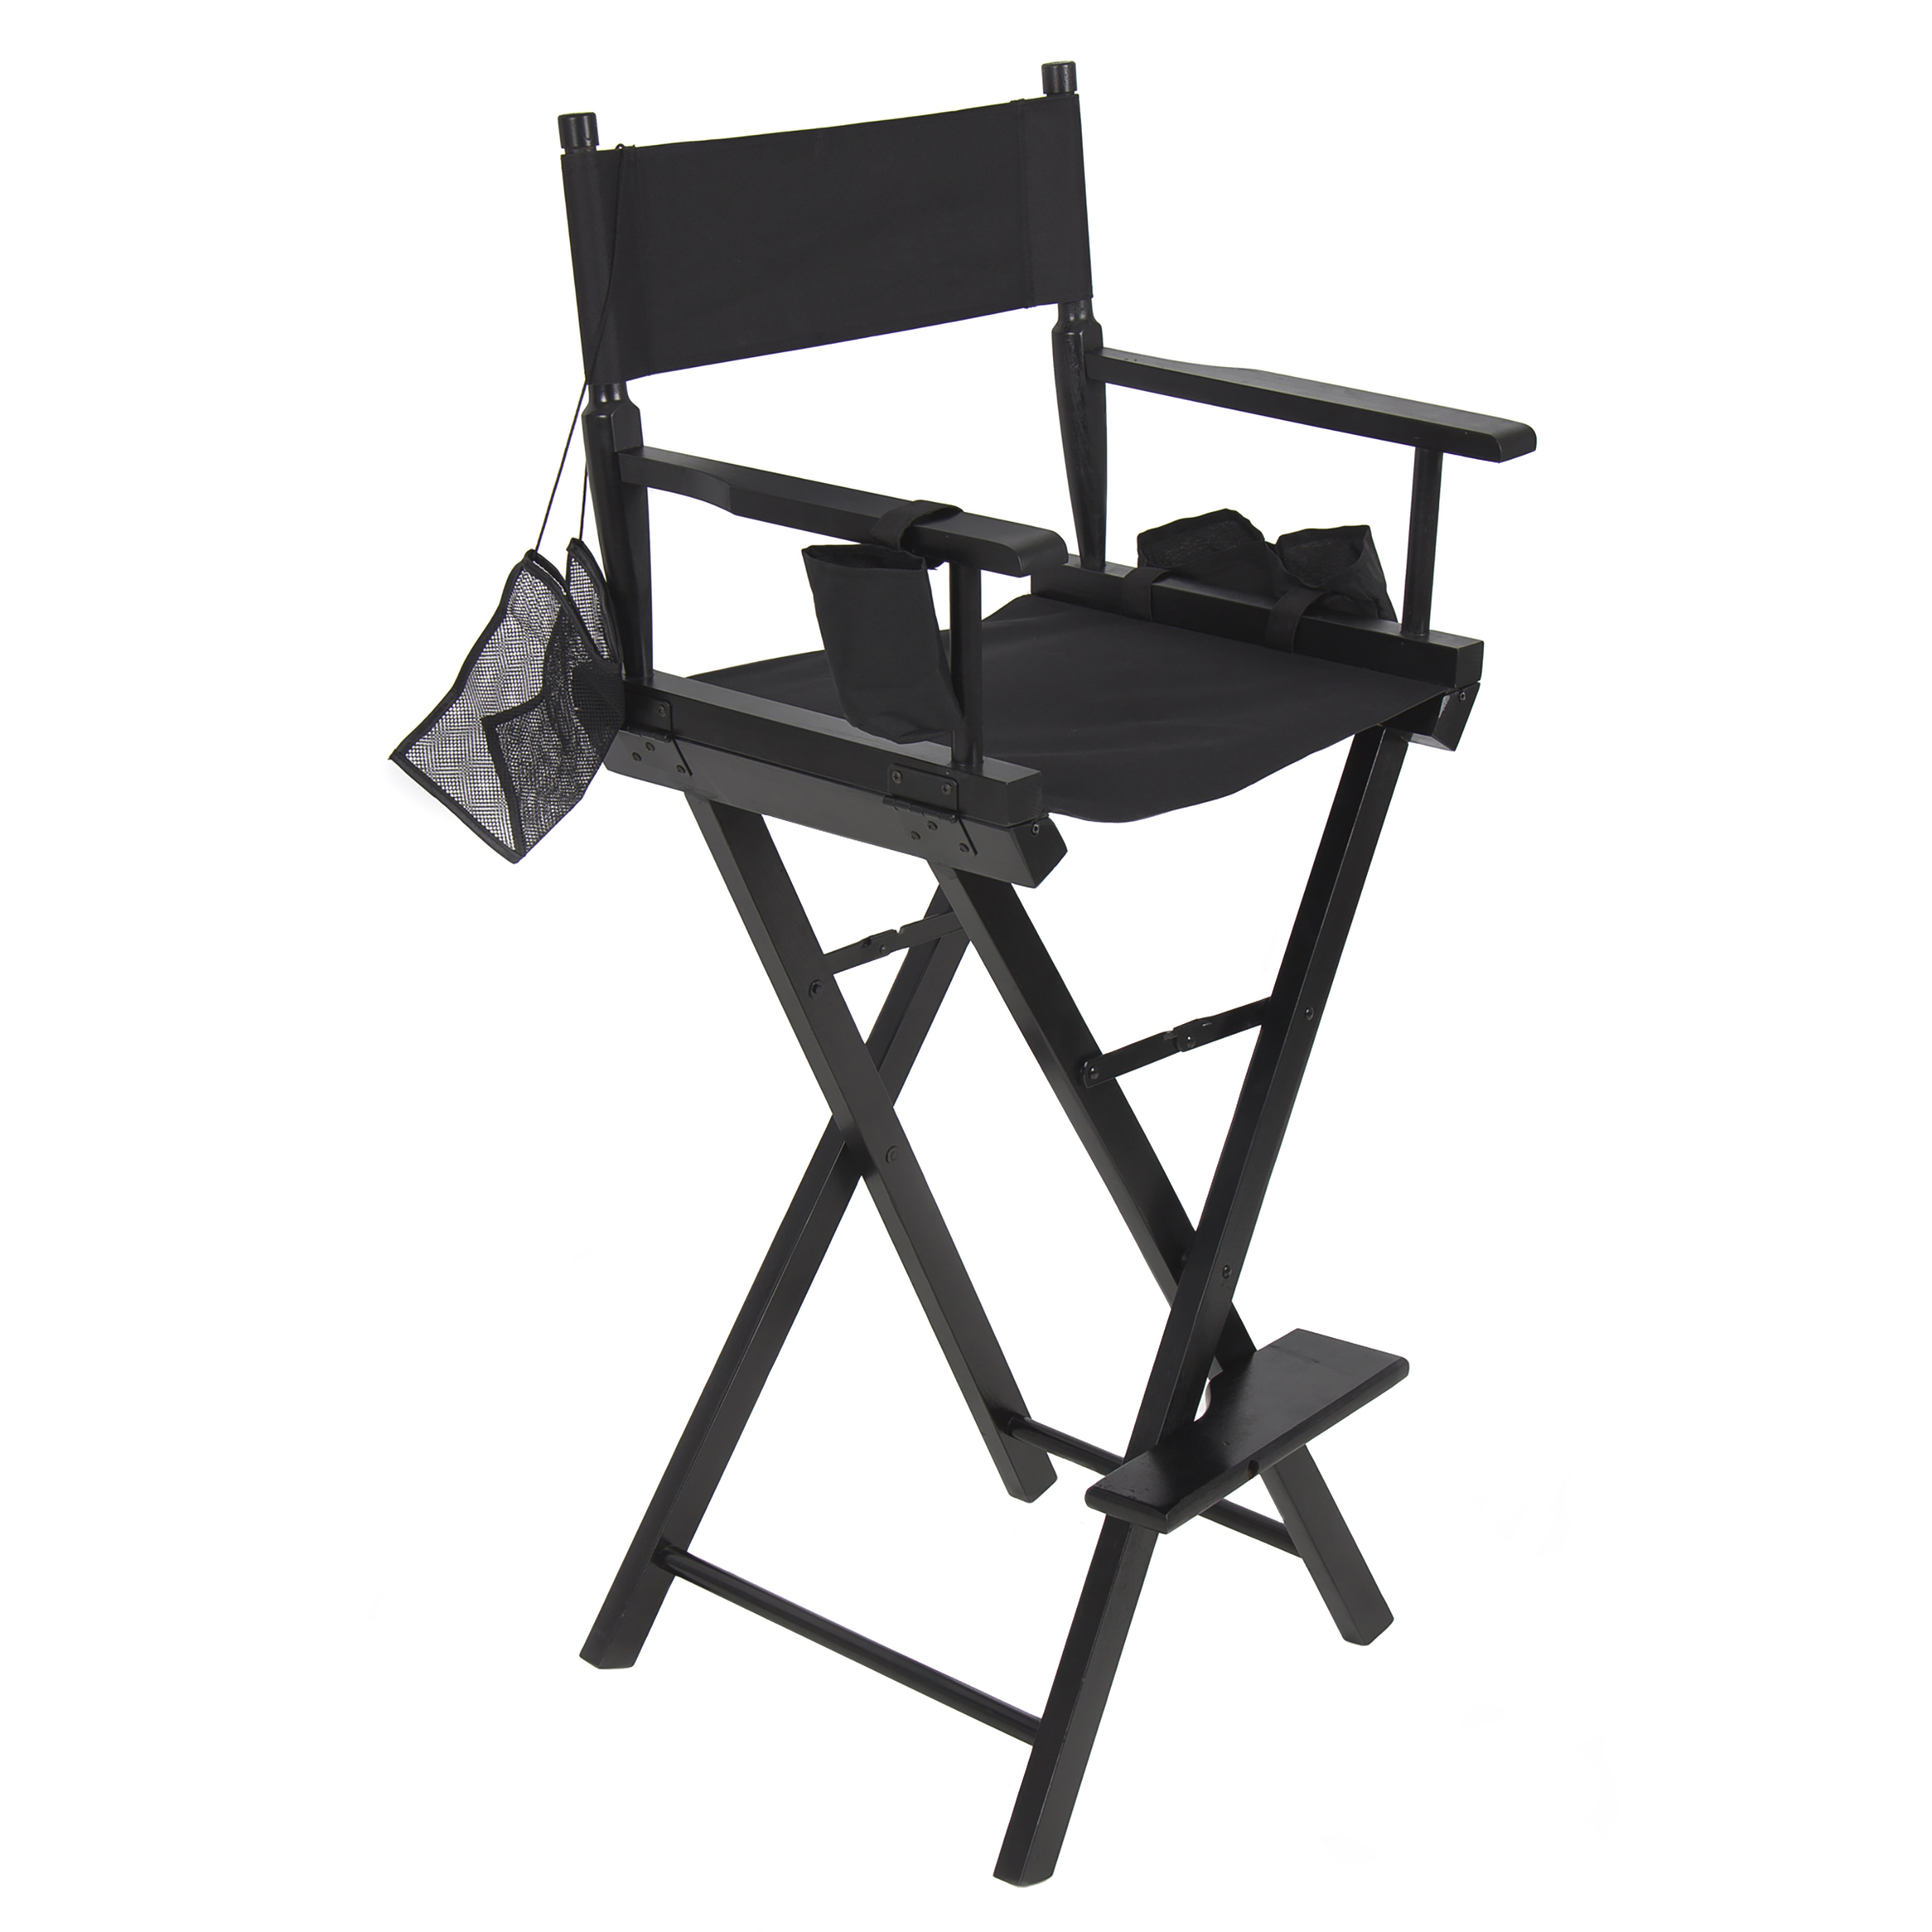 personalized makeup artist chair cheap covers walmart best choice products foldable lightweight professional directors black